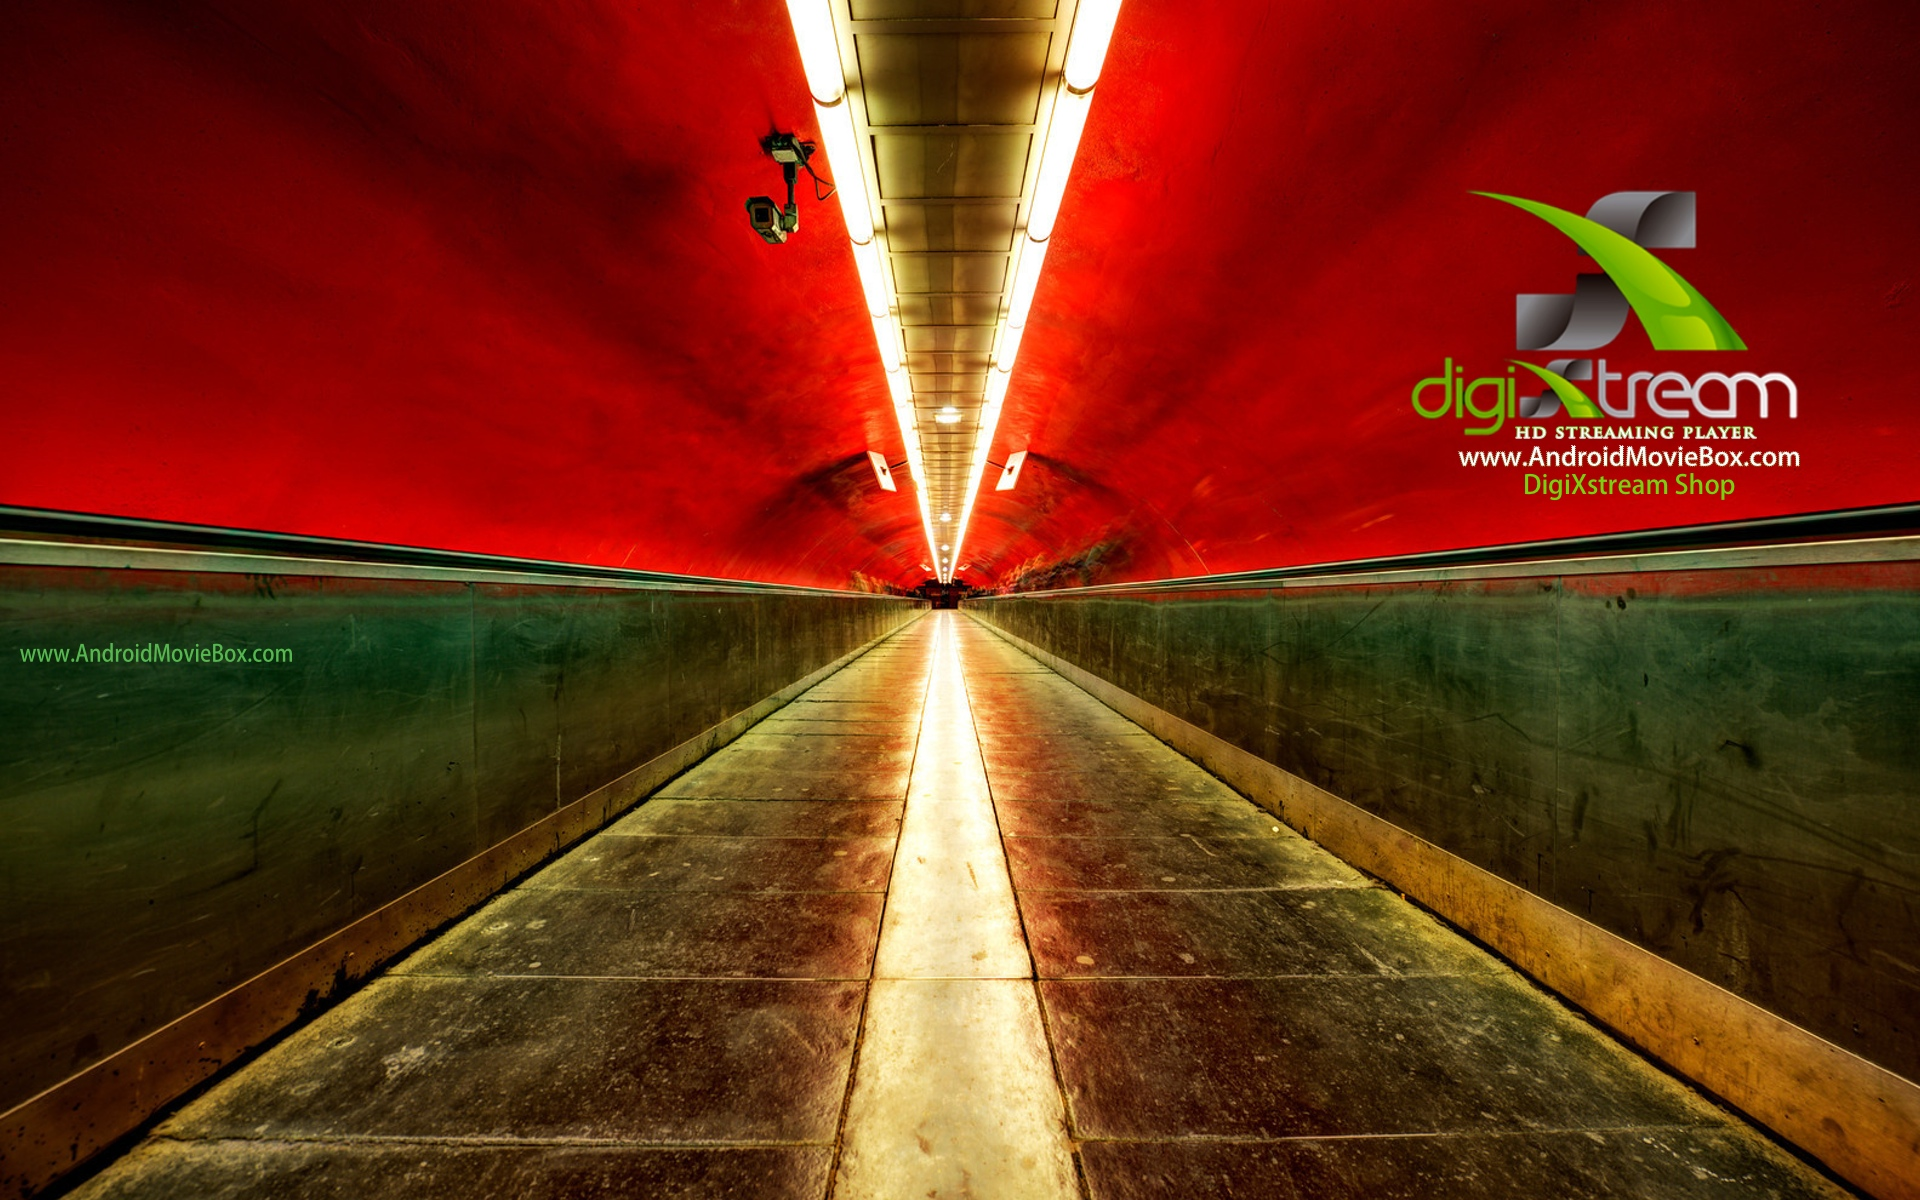 DigiXstream AndroidMovieBox Background red tunnel